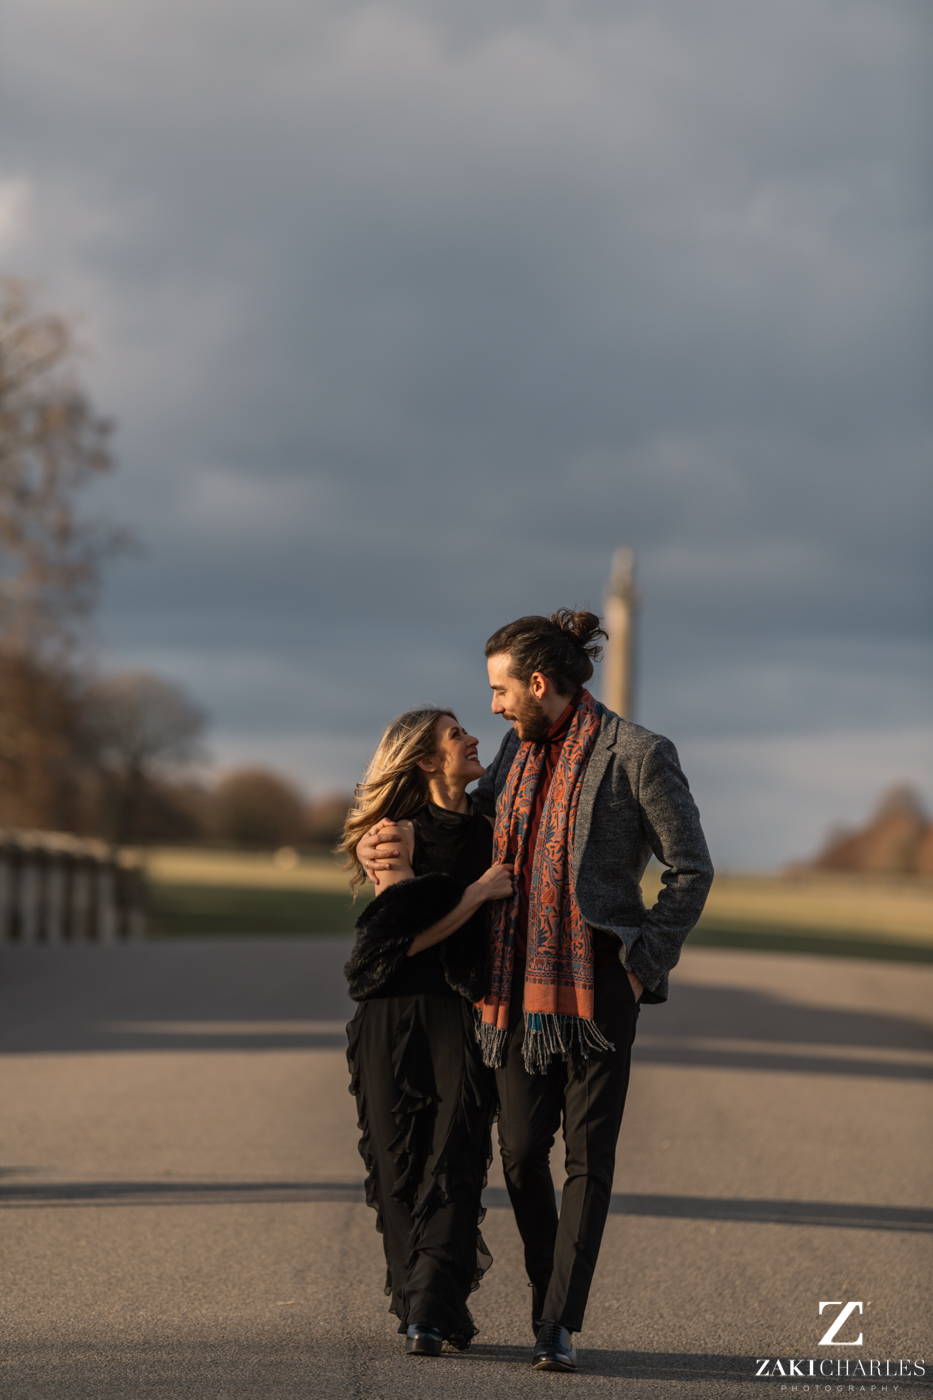 Blenheim Palace Engagement Session, AJ and Yannis walking, natural light 3